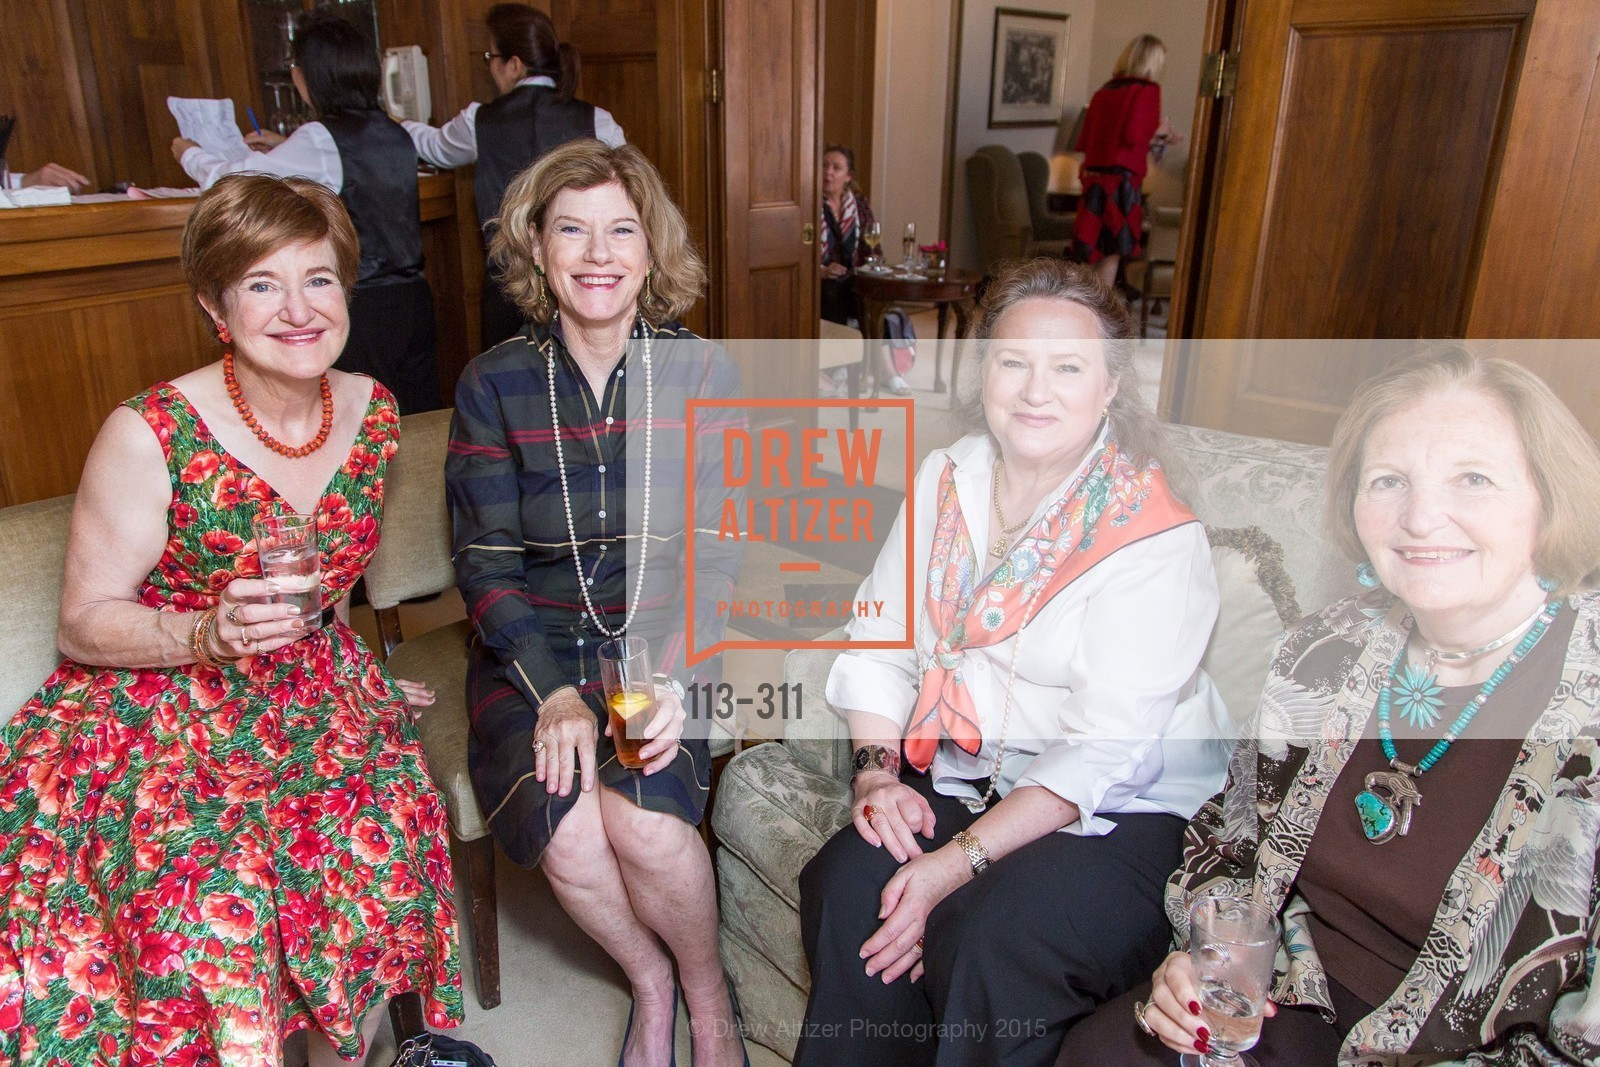 Top Picks, Metropolitan Club/Centennial Fashion Show, September 24th, 2015, Photo,Drew Altizer, Drew Altizer Photography, full-service agency, private events, San Francisco photographer, photographer california